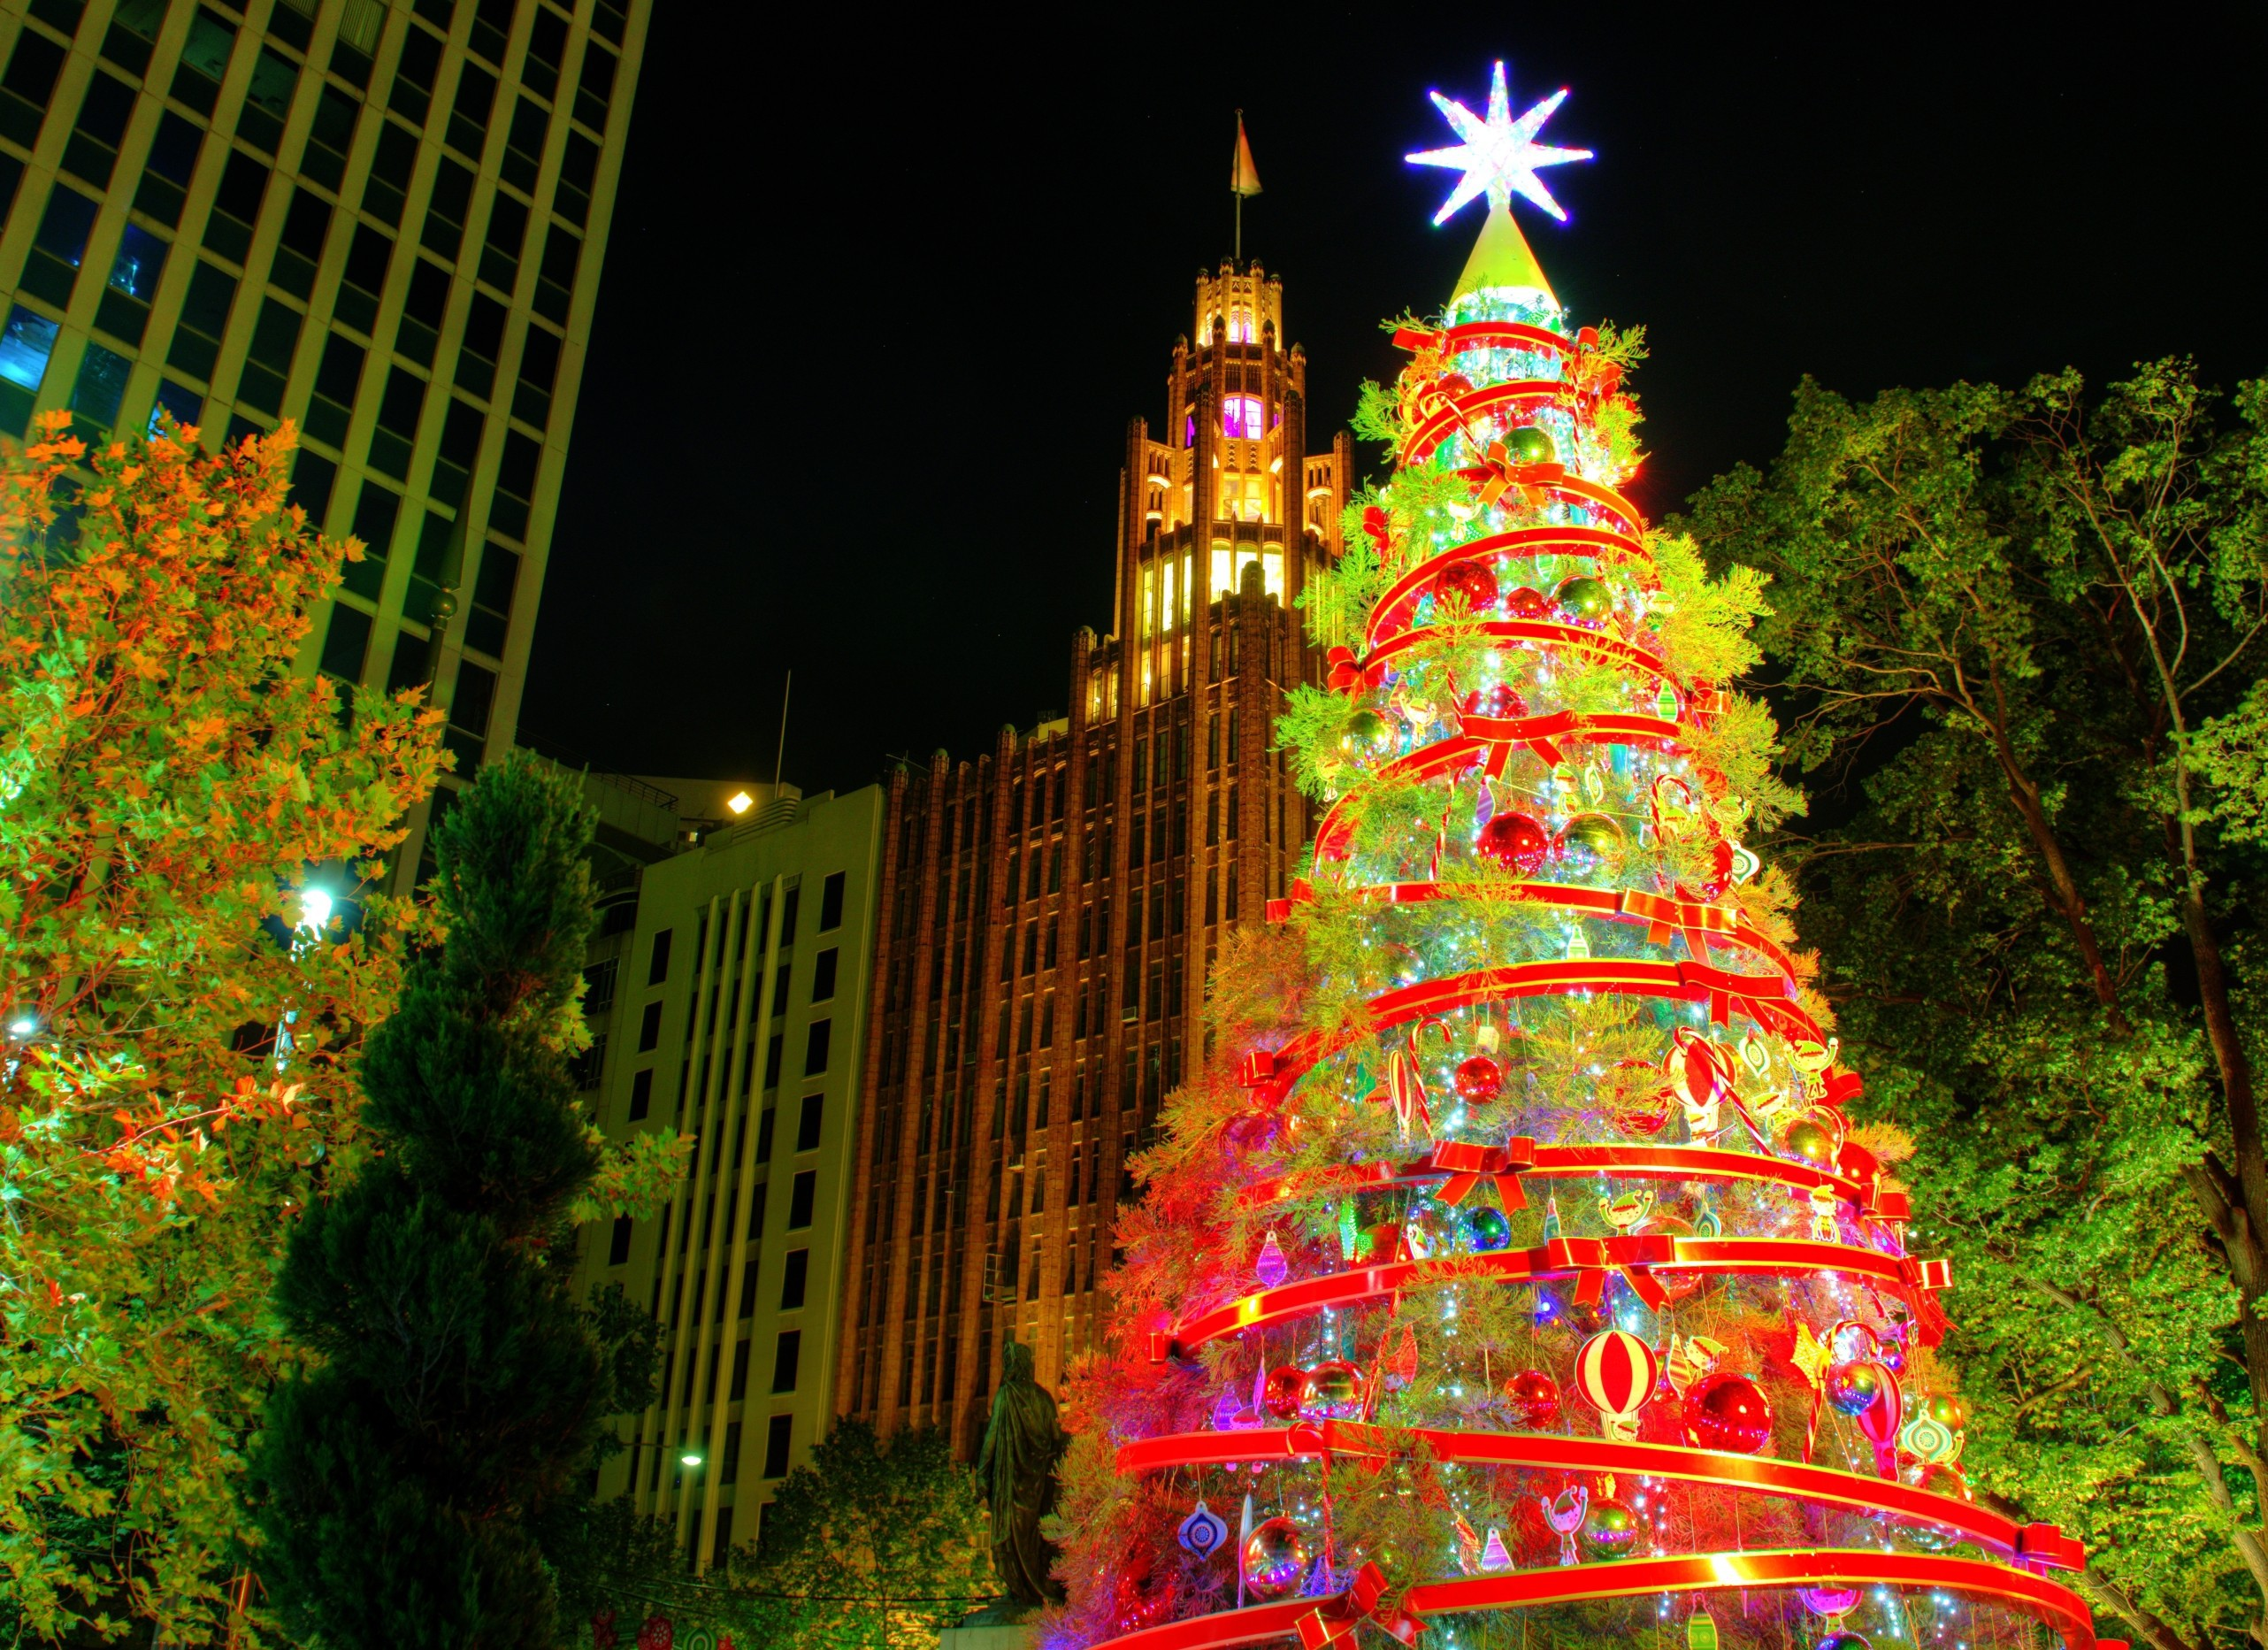 Top 10 Free Children S Christmas Events In Melbourne Melbourne By Gayle Beveridge